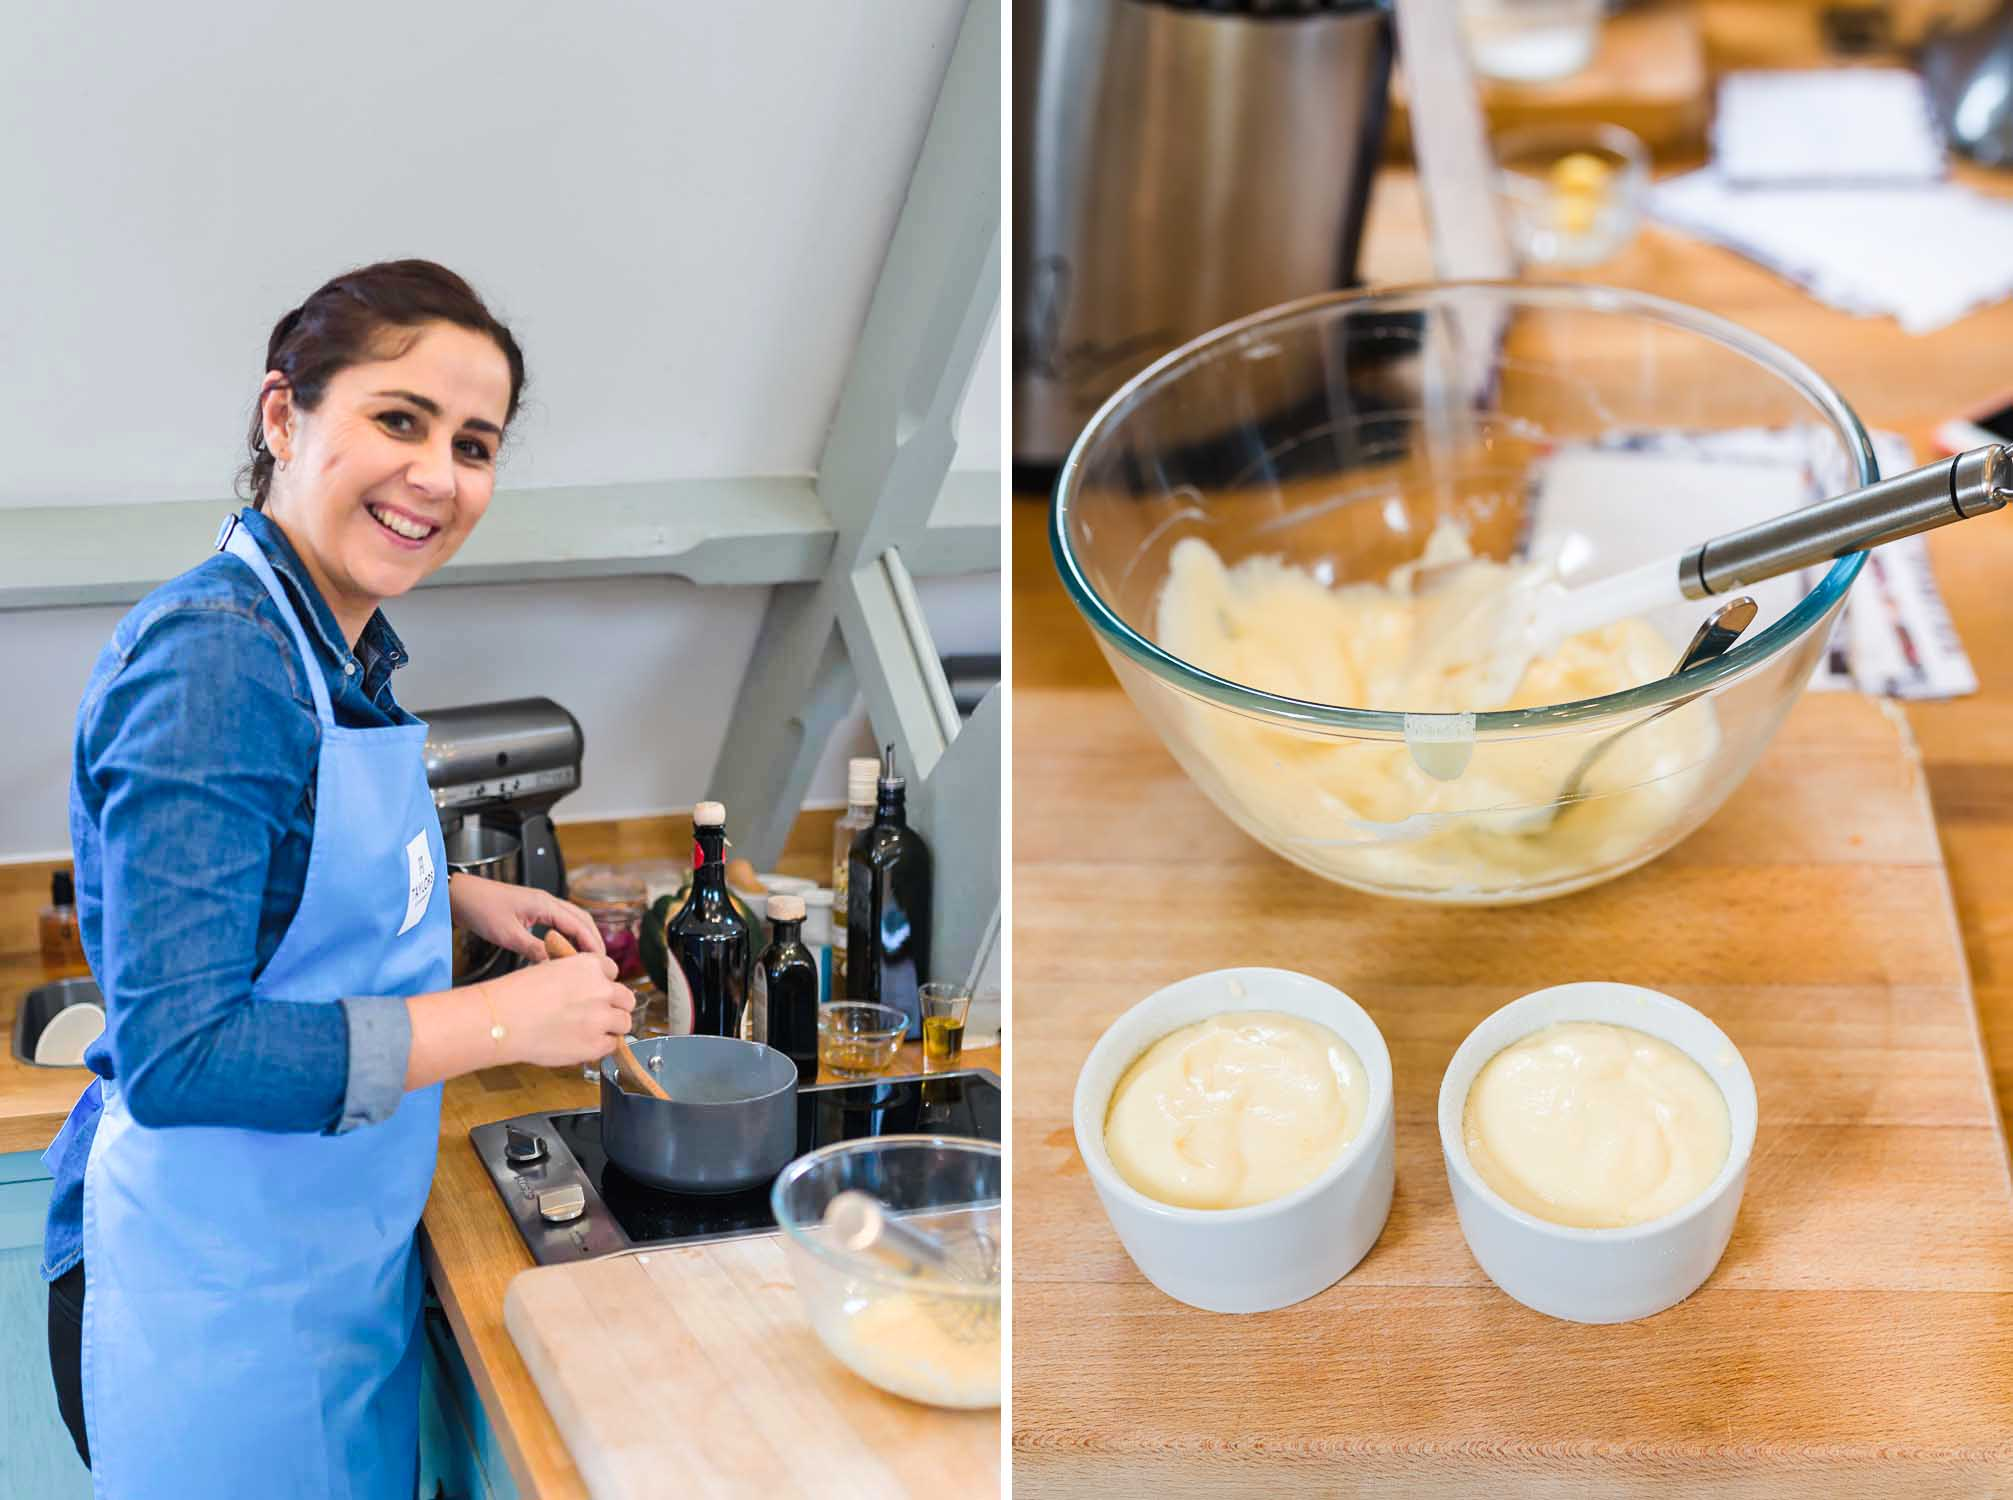 Cooking Workshop at Cactus Kitchens in London - Vanilla Soufflés with Taylors of Harrogate Coffee Crème Anglaise